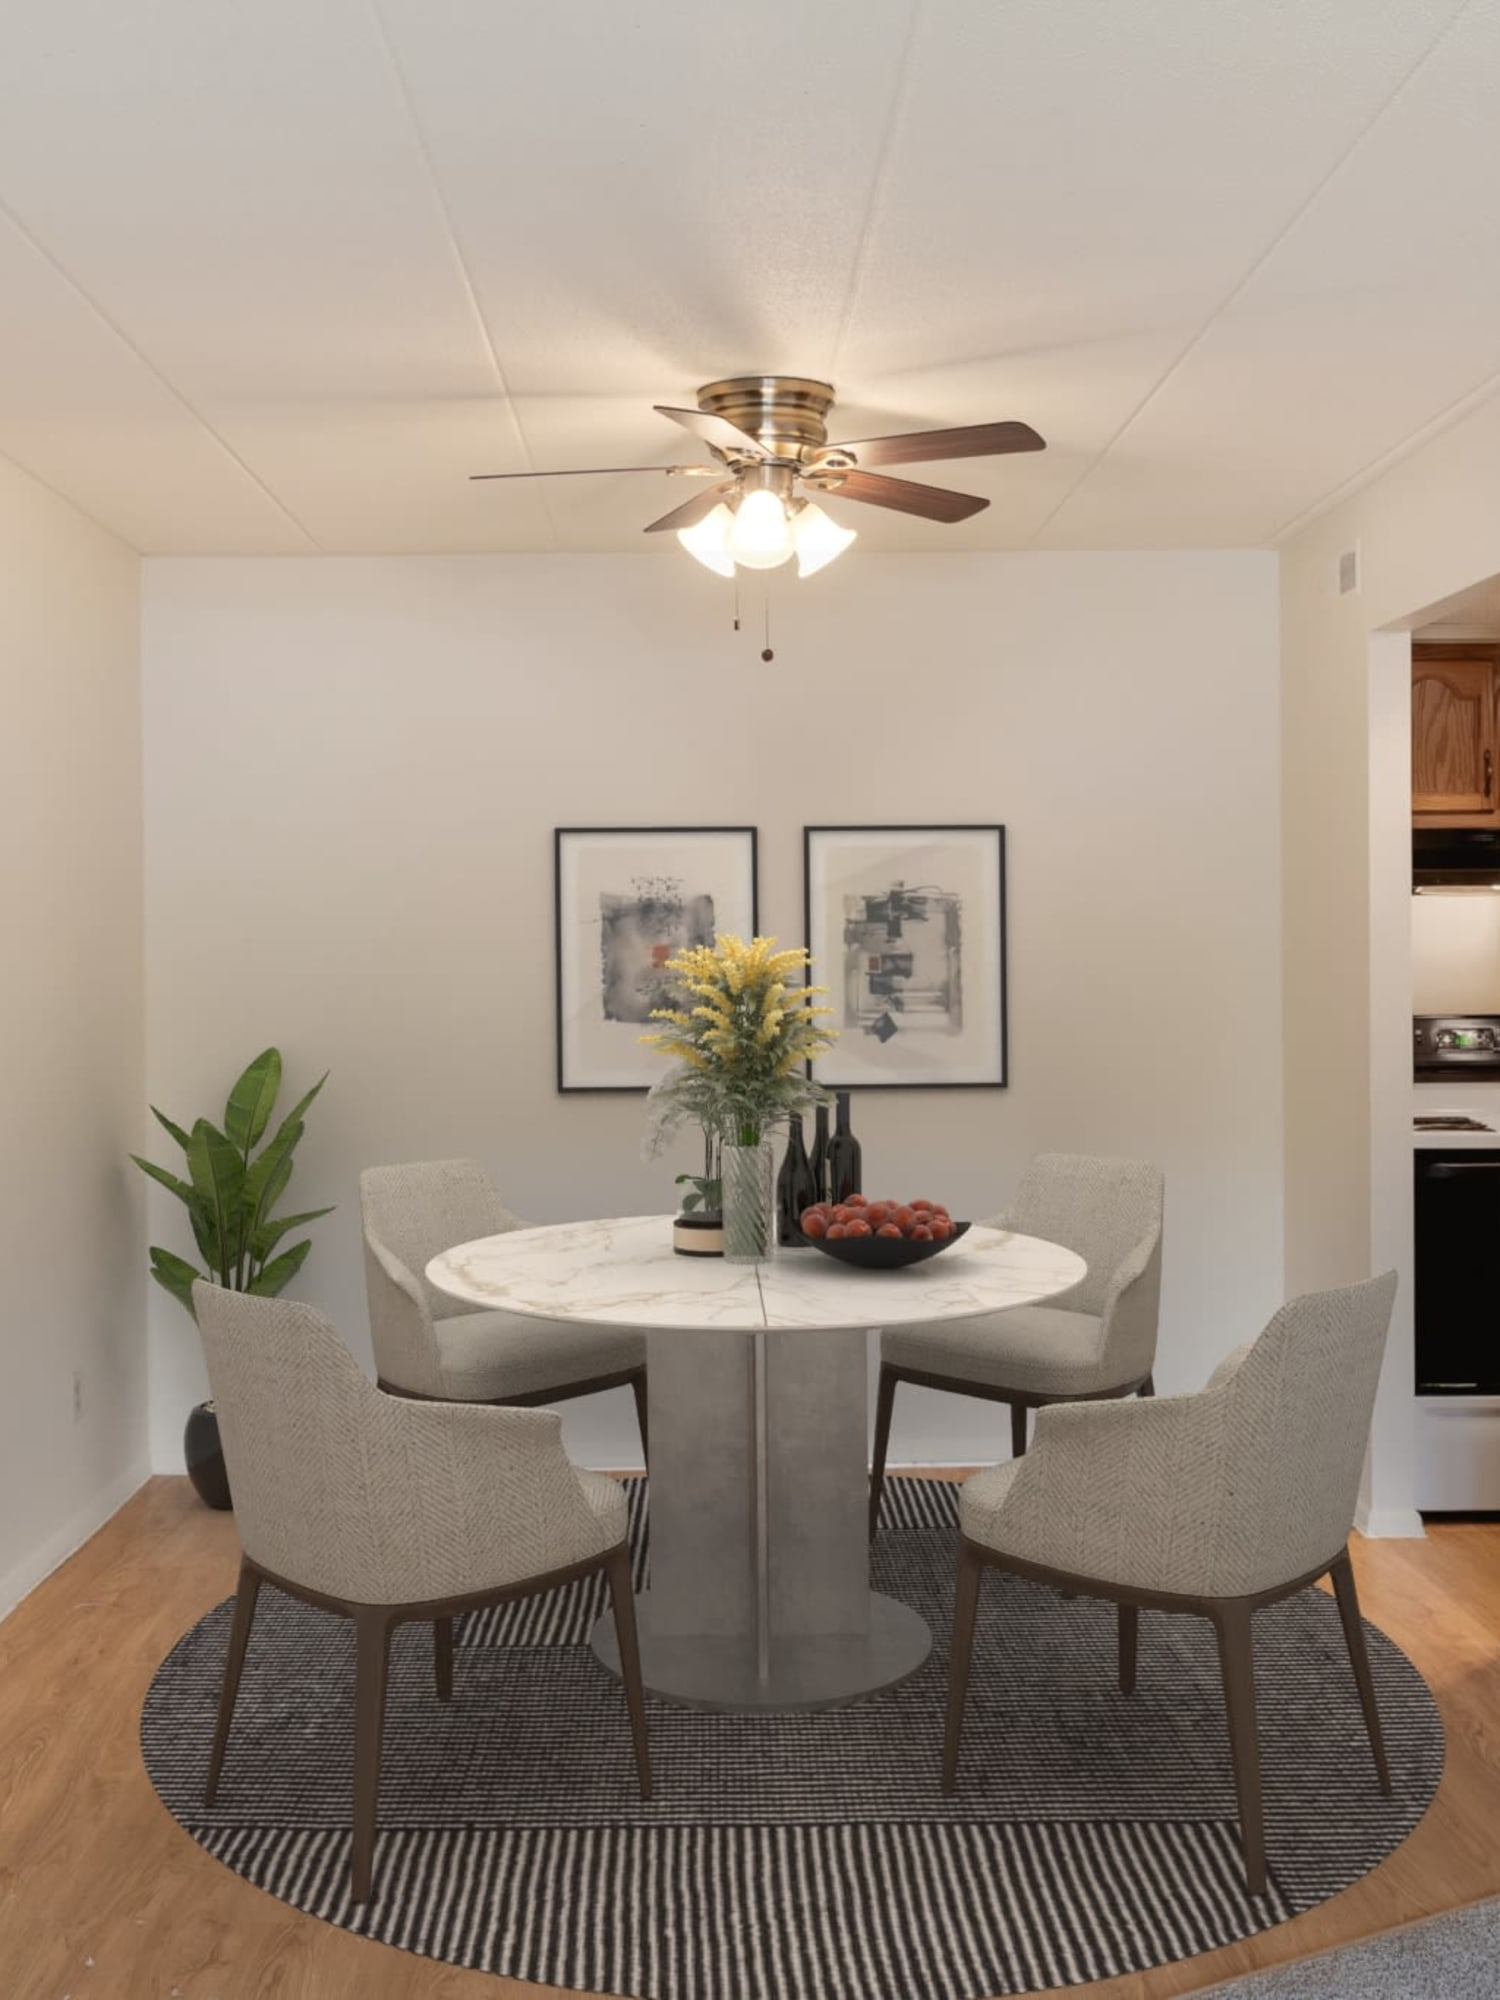 A dining room with a ceiling fan at Vantage Pointe West Apartments in Cincinnati, Ohio